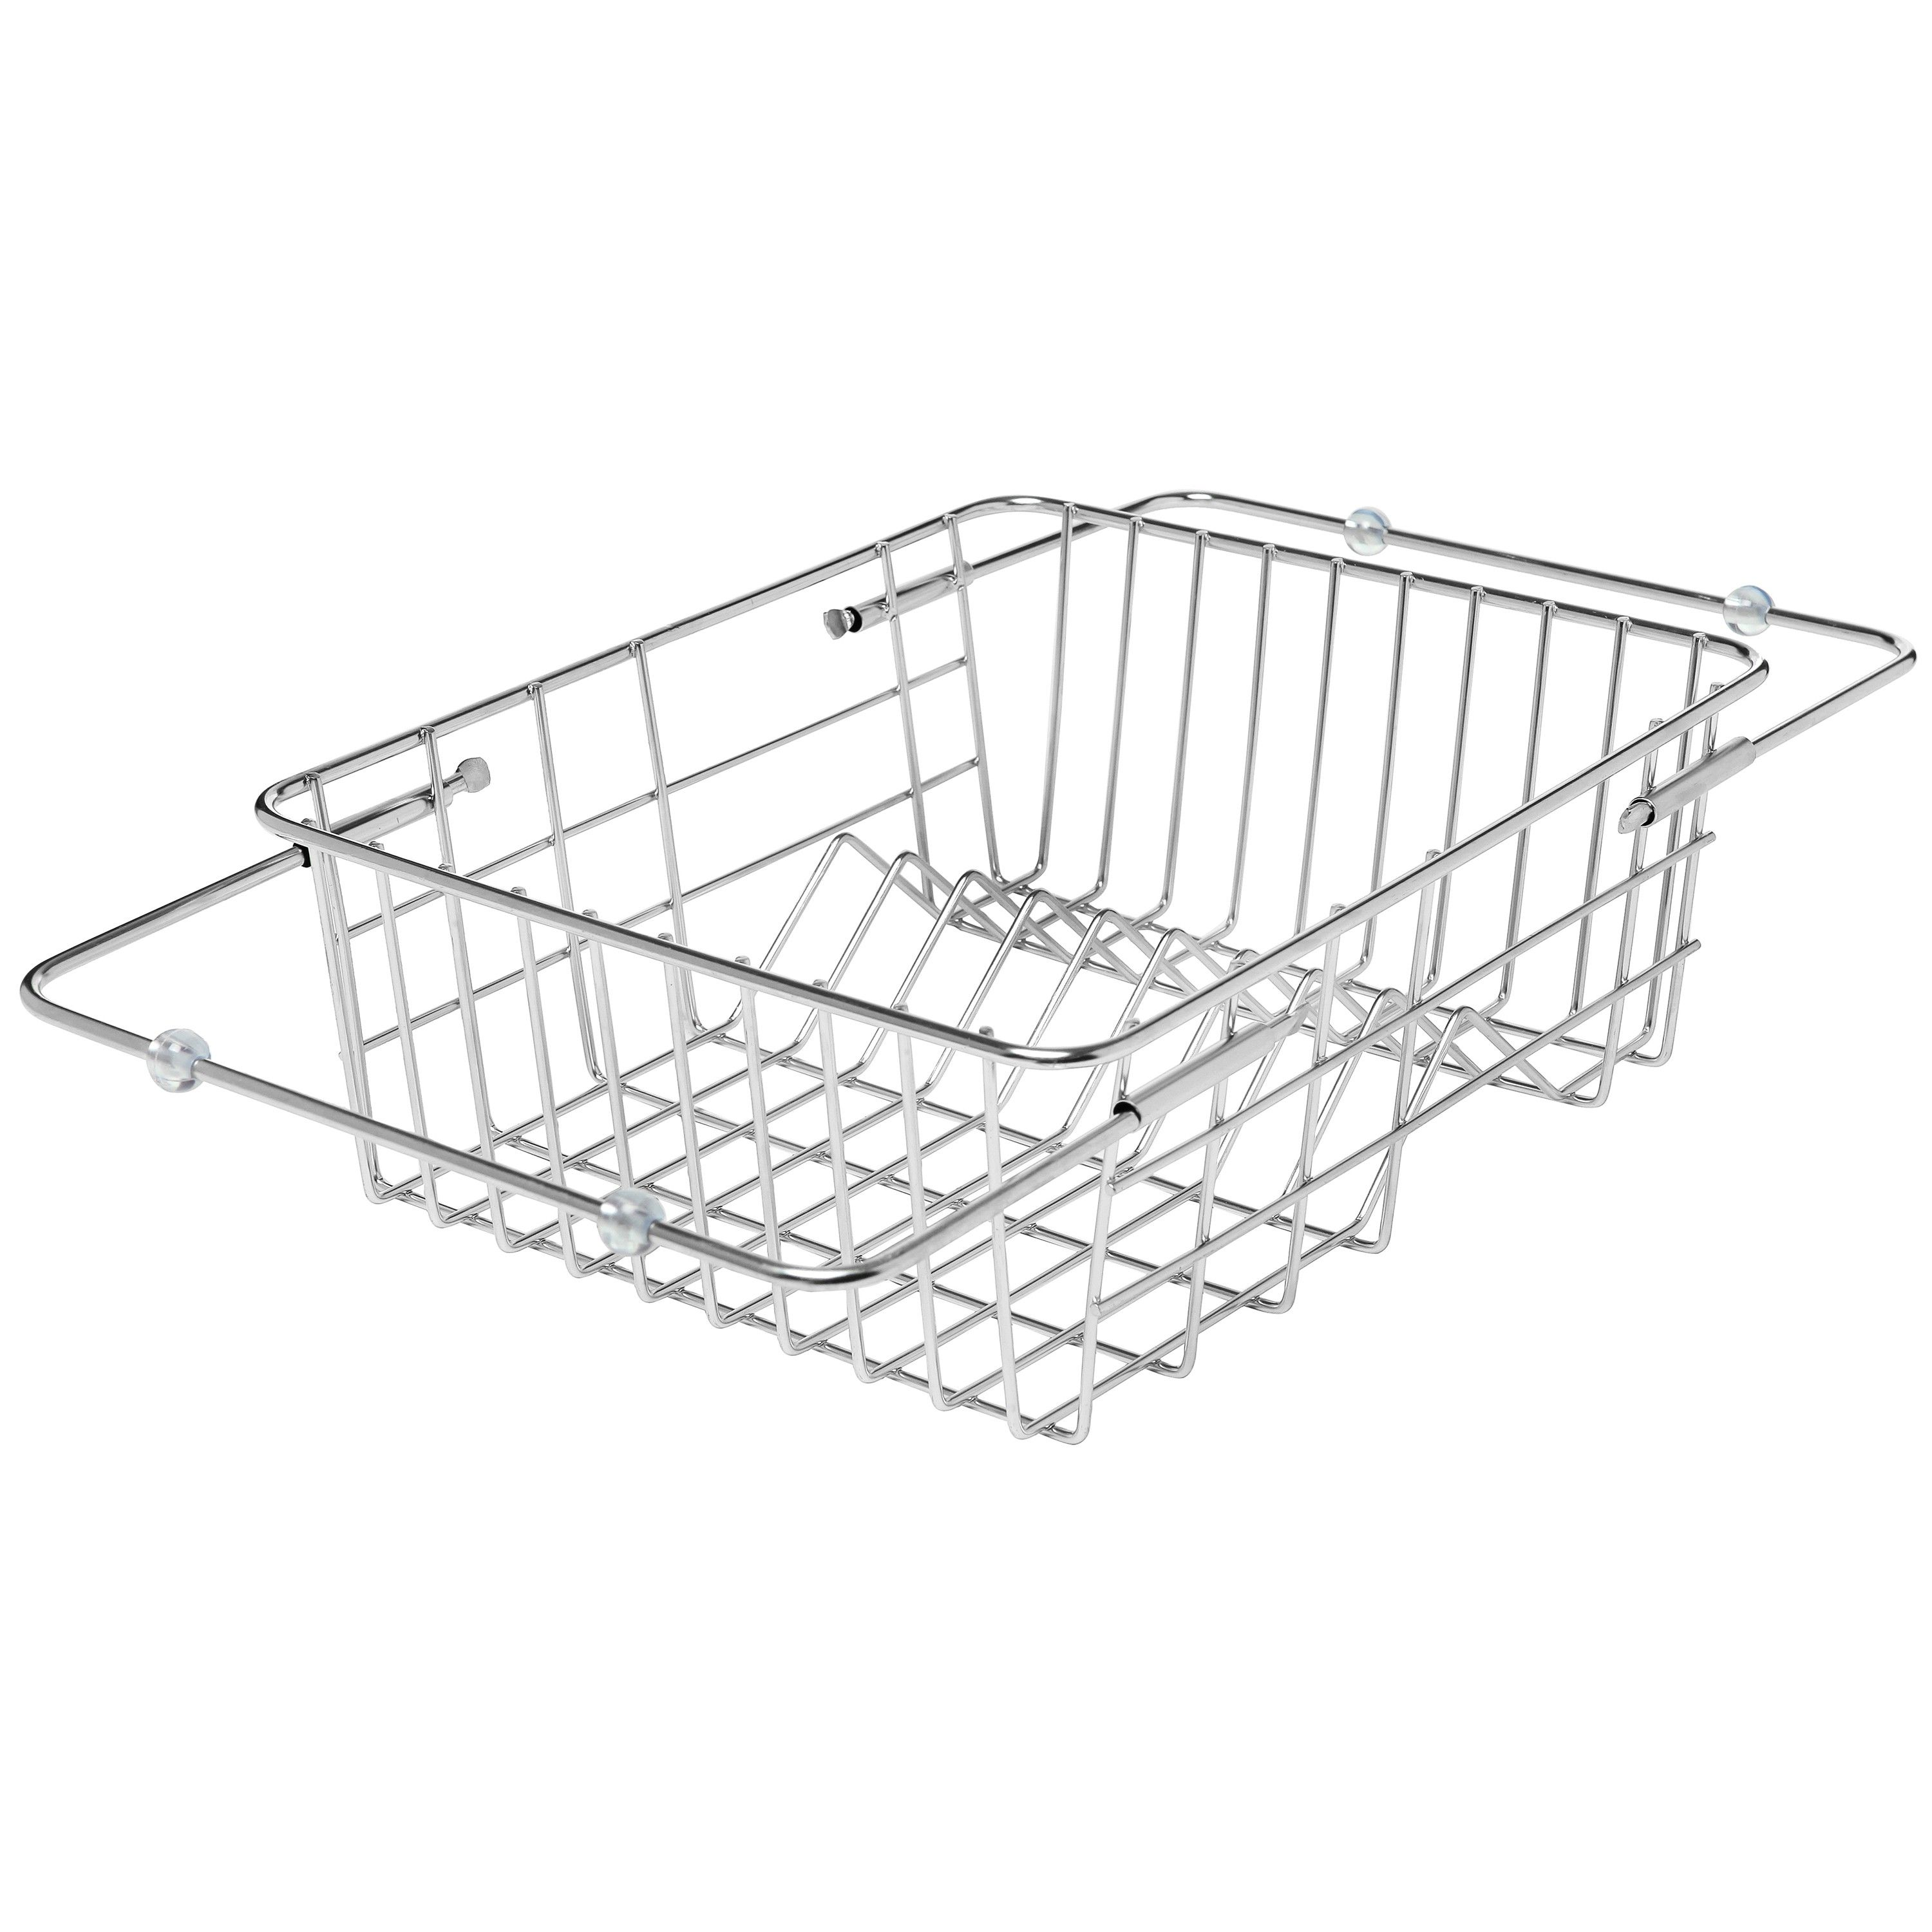 Space Saving Dish Rack Save Counter Space By Letting Dishes Dry Over The Sink In This